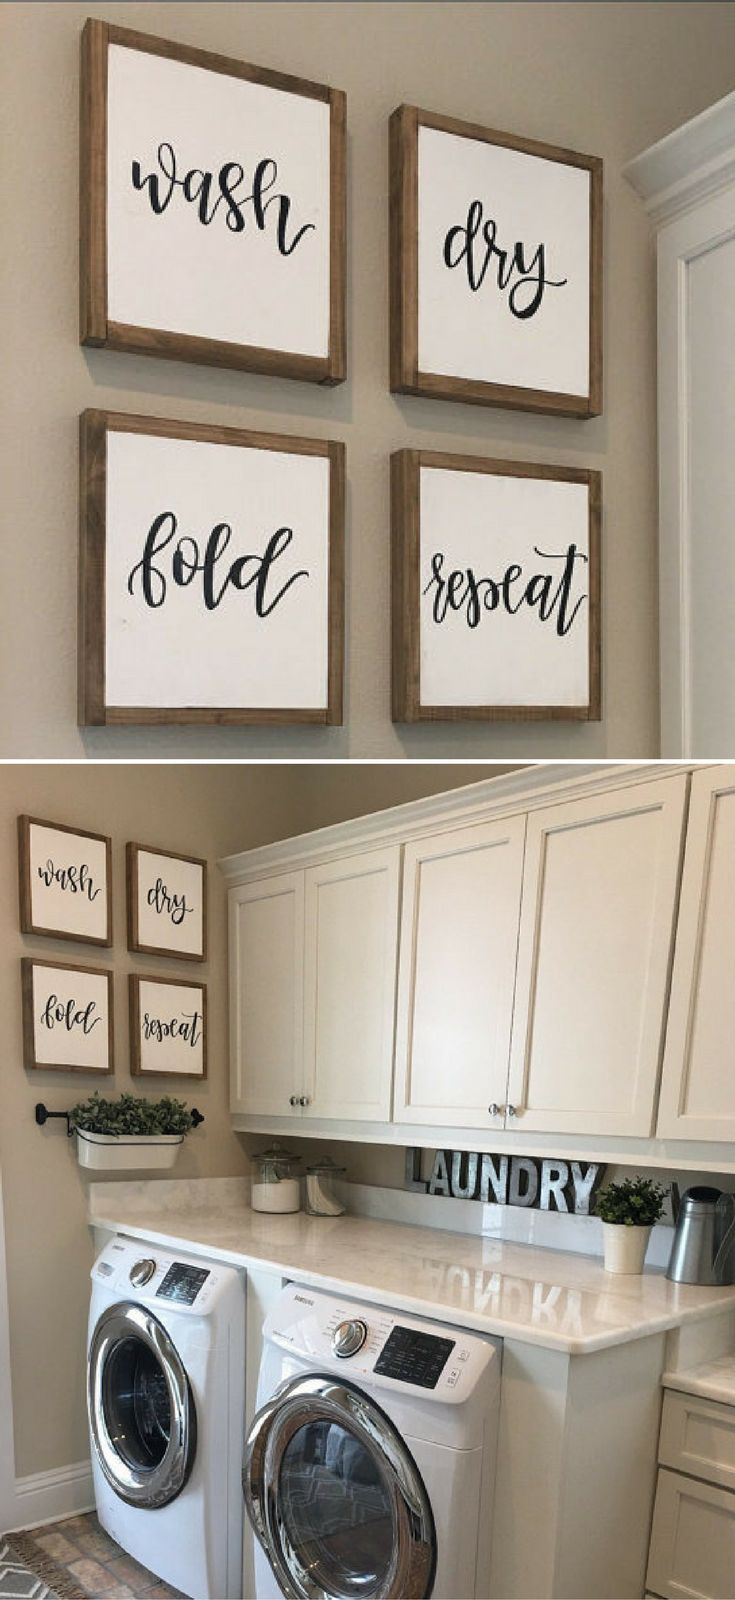 Laundry Room Sign Laundry Sign Wash Dry Fold Repeat Sign Reclaimed Wood Sign Mudroom Signs L Laundry Room Wall Decor Laundry Room Signs Laundry Signs Laundry room signs for home diy home